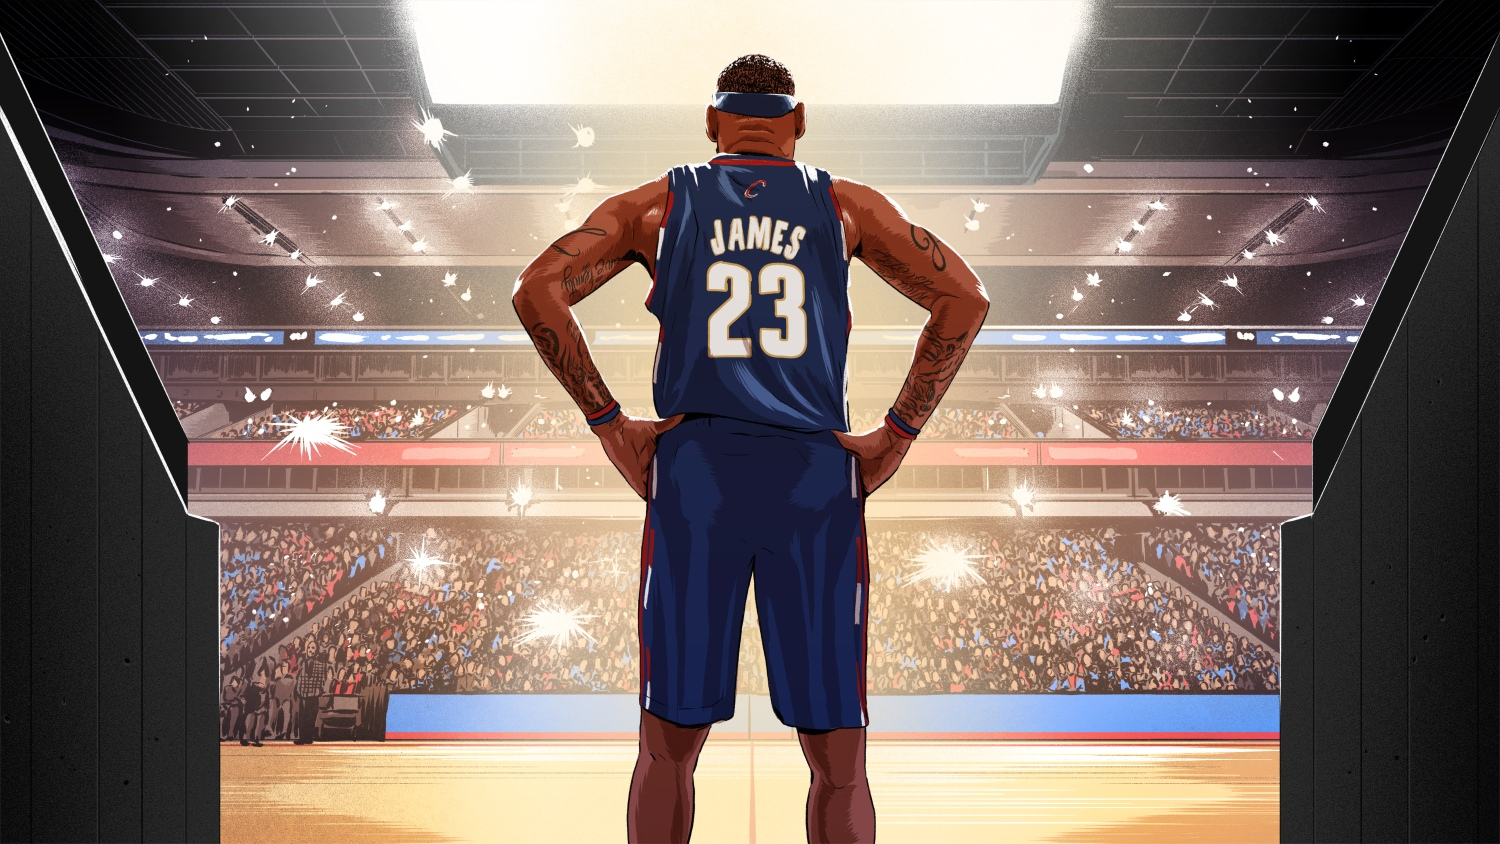 287d912c8cb The King is crowned: the true and actual arrival of LeBron James